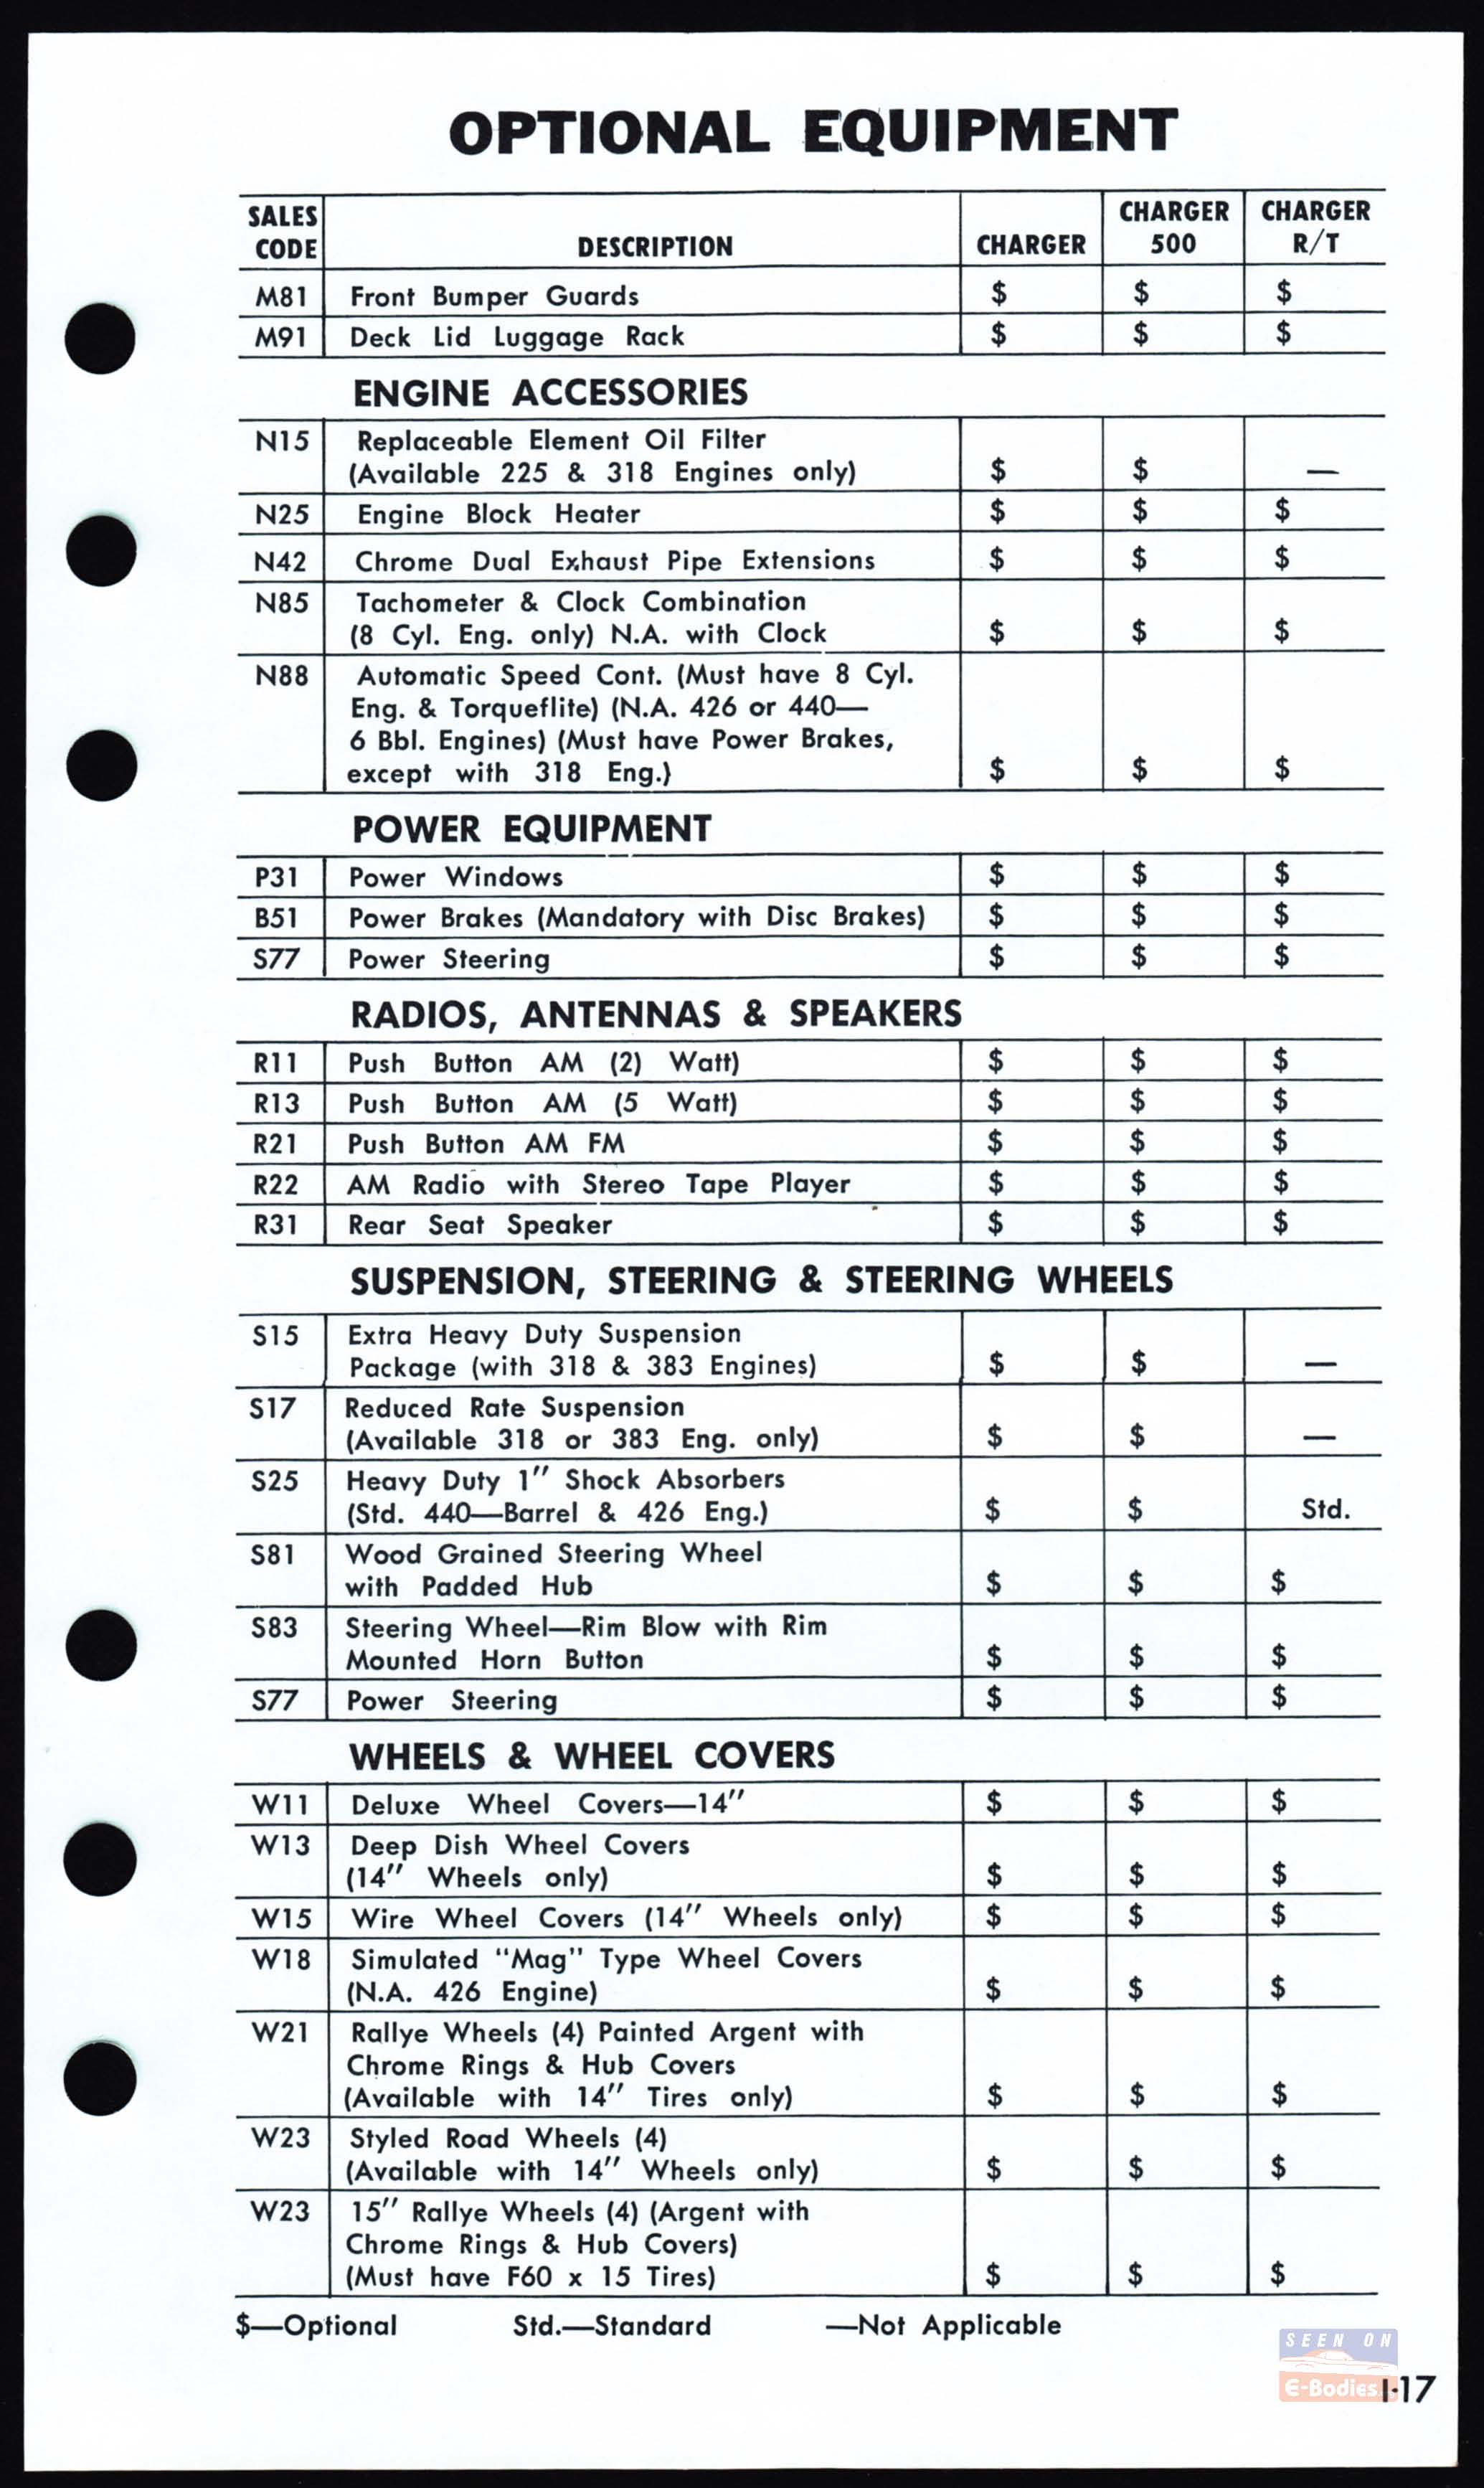 1970 Dodge Data Book Fast Facts Charger